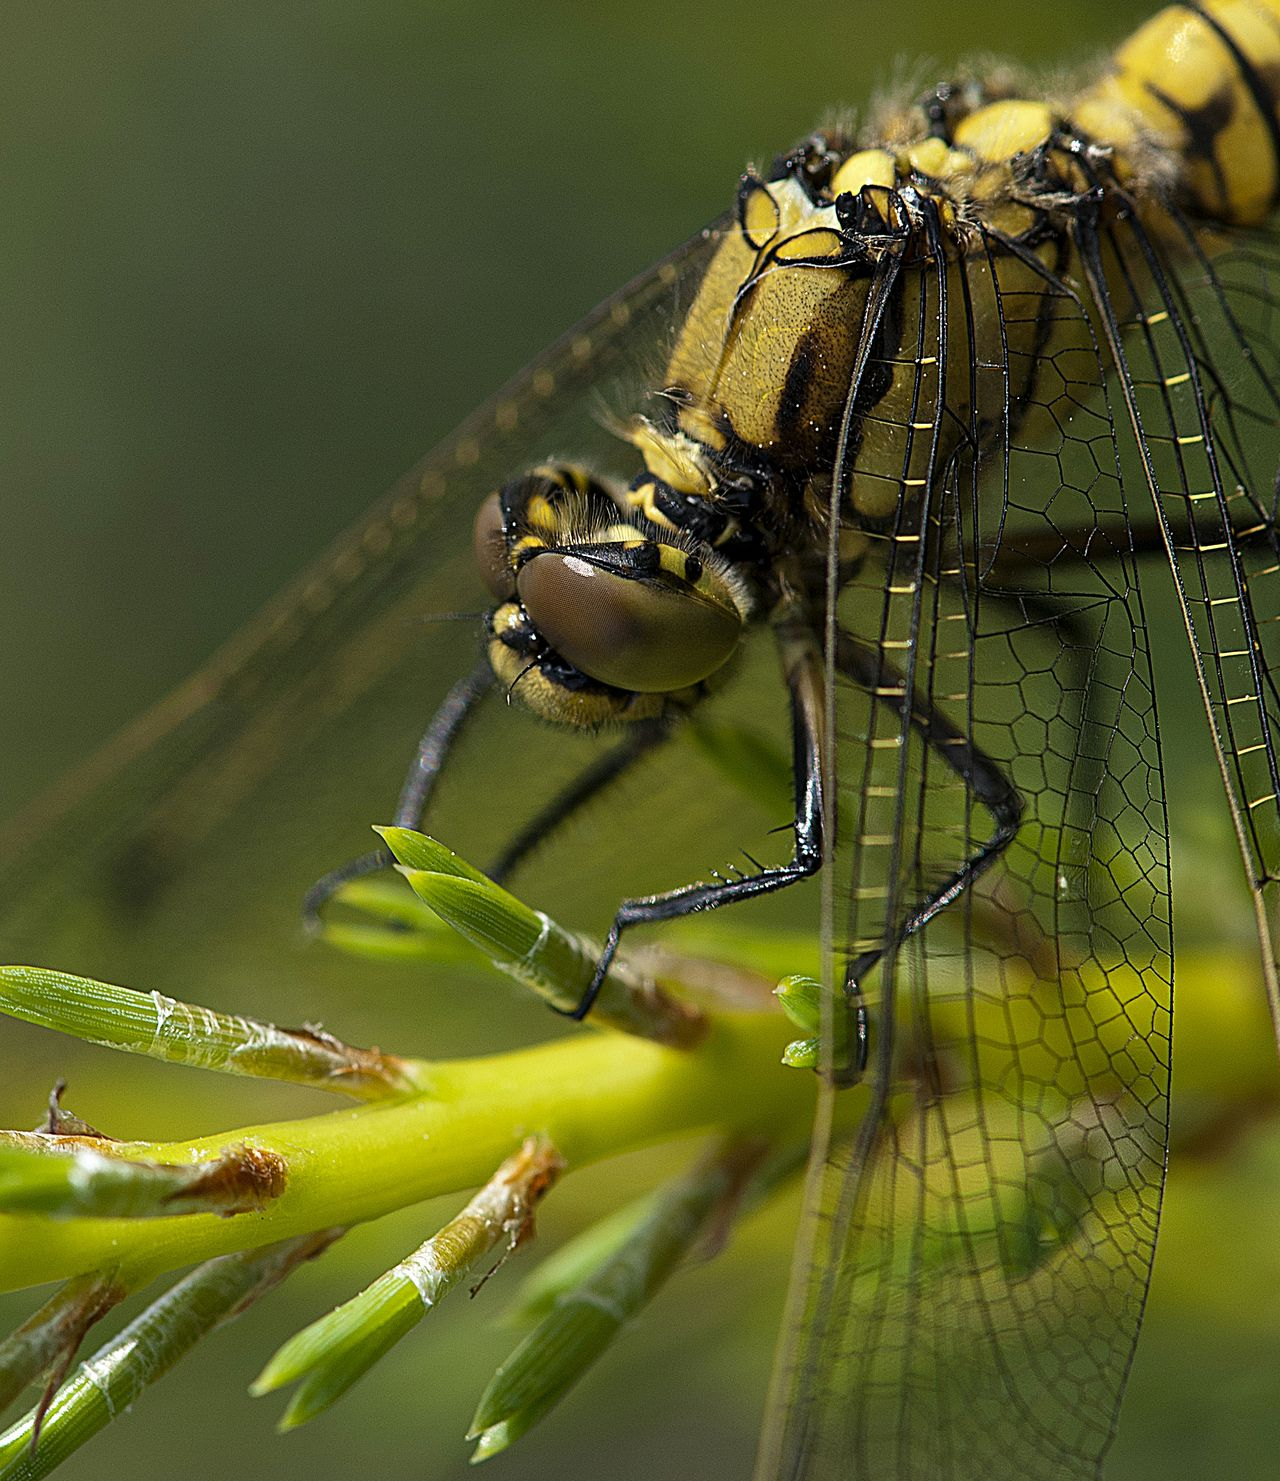 Dragonfly of Latvia Animal Themes Animal Wildlife Animal Wing Animals In The Wild Botanic Close-up Damselfly Dragonflies Dragonfly Enjoying Life Extreme Close-up EyeEm Gallery EyeEm Nature Lover EyeEmNewHere Forest Forest Life Gold Wings Insect Leaf Macro Dragonfly Nature Plant Science